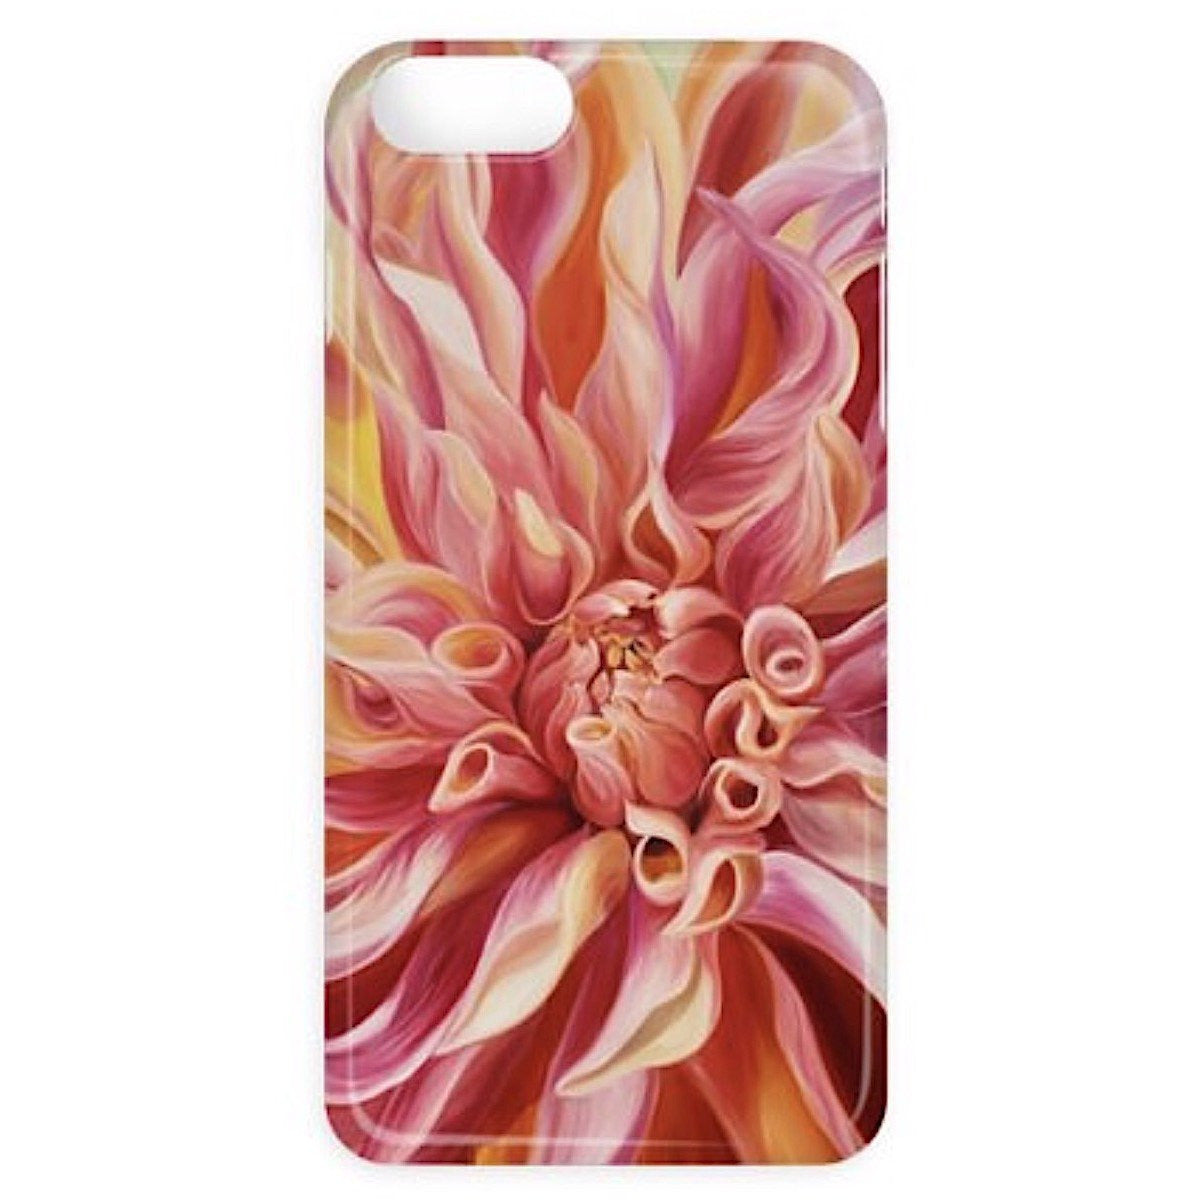 peach labyrinth dahlia- designer floral iphone case- anita nowinska flower painting